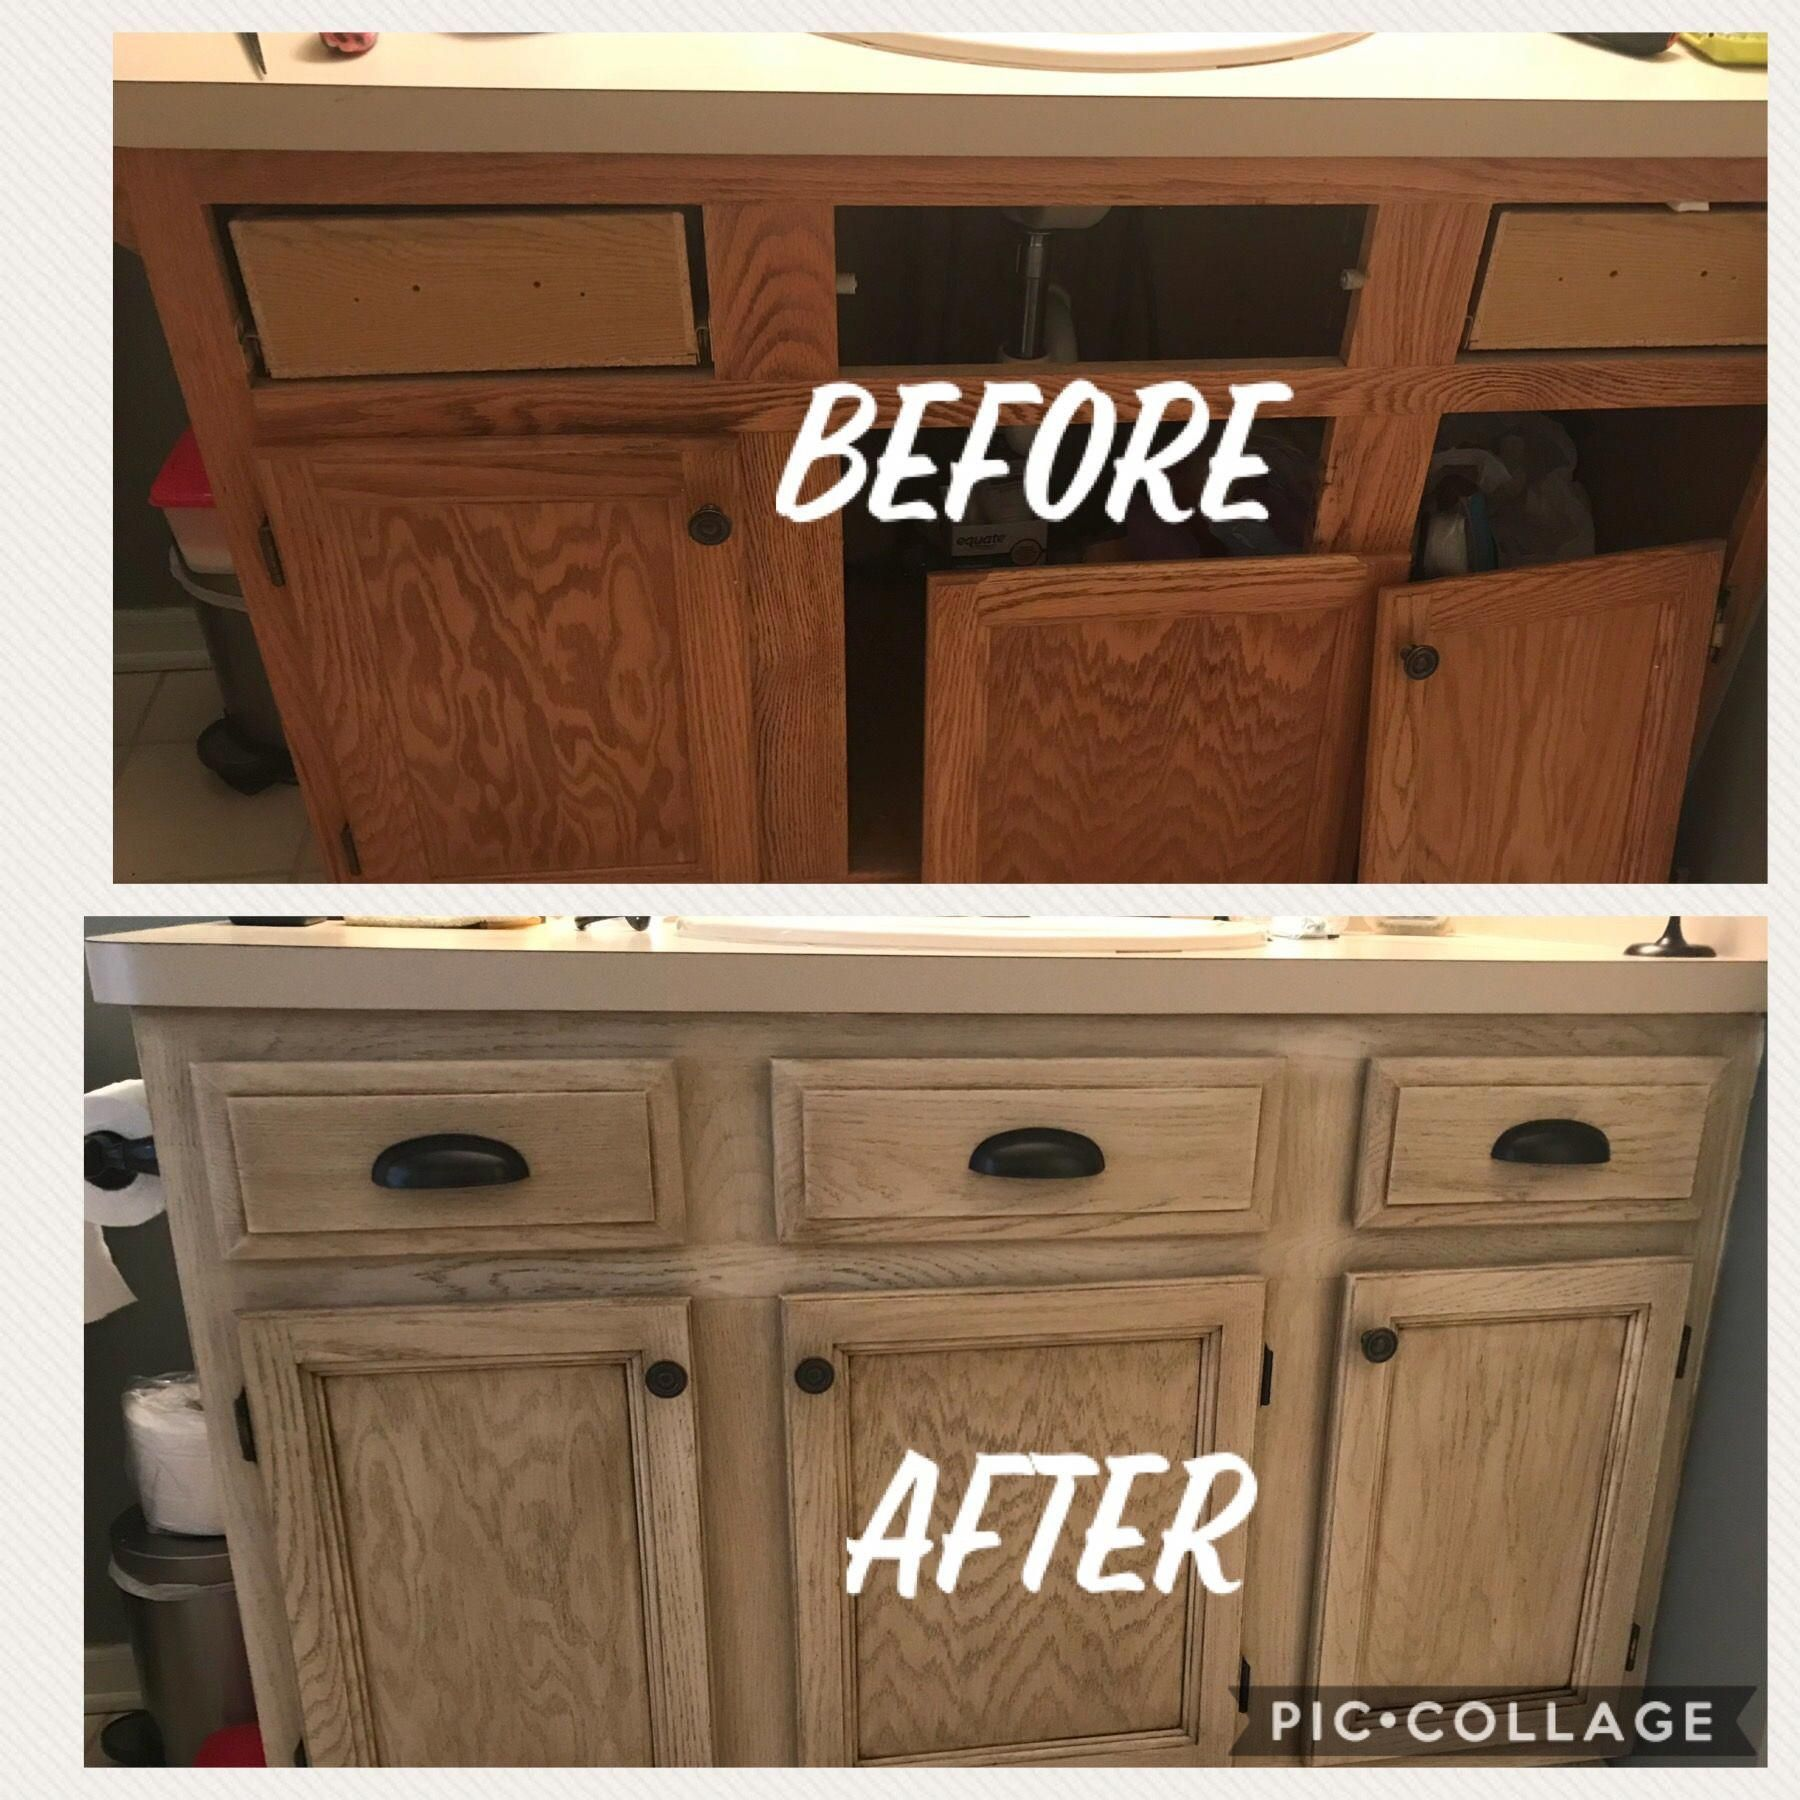 23 Outstanding Concepts For Refinishingkitchencabinets Glazed Kitchen Cabinets Redo Cabinets Restaining Kitchen Cabinets